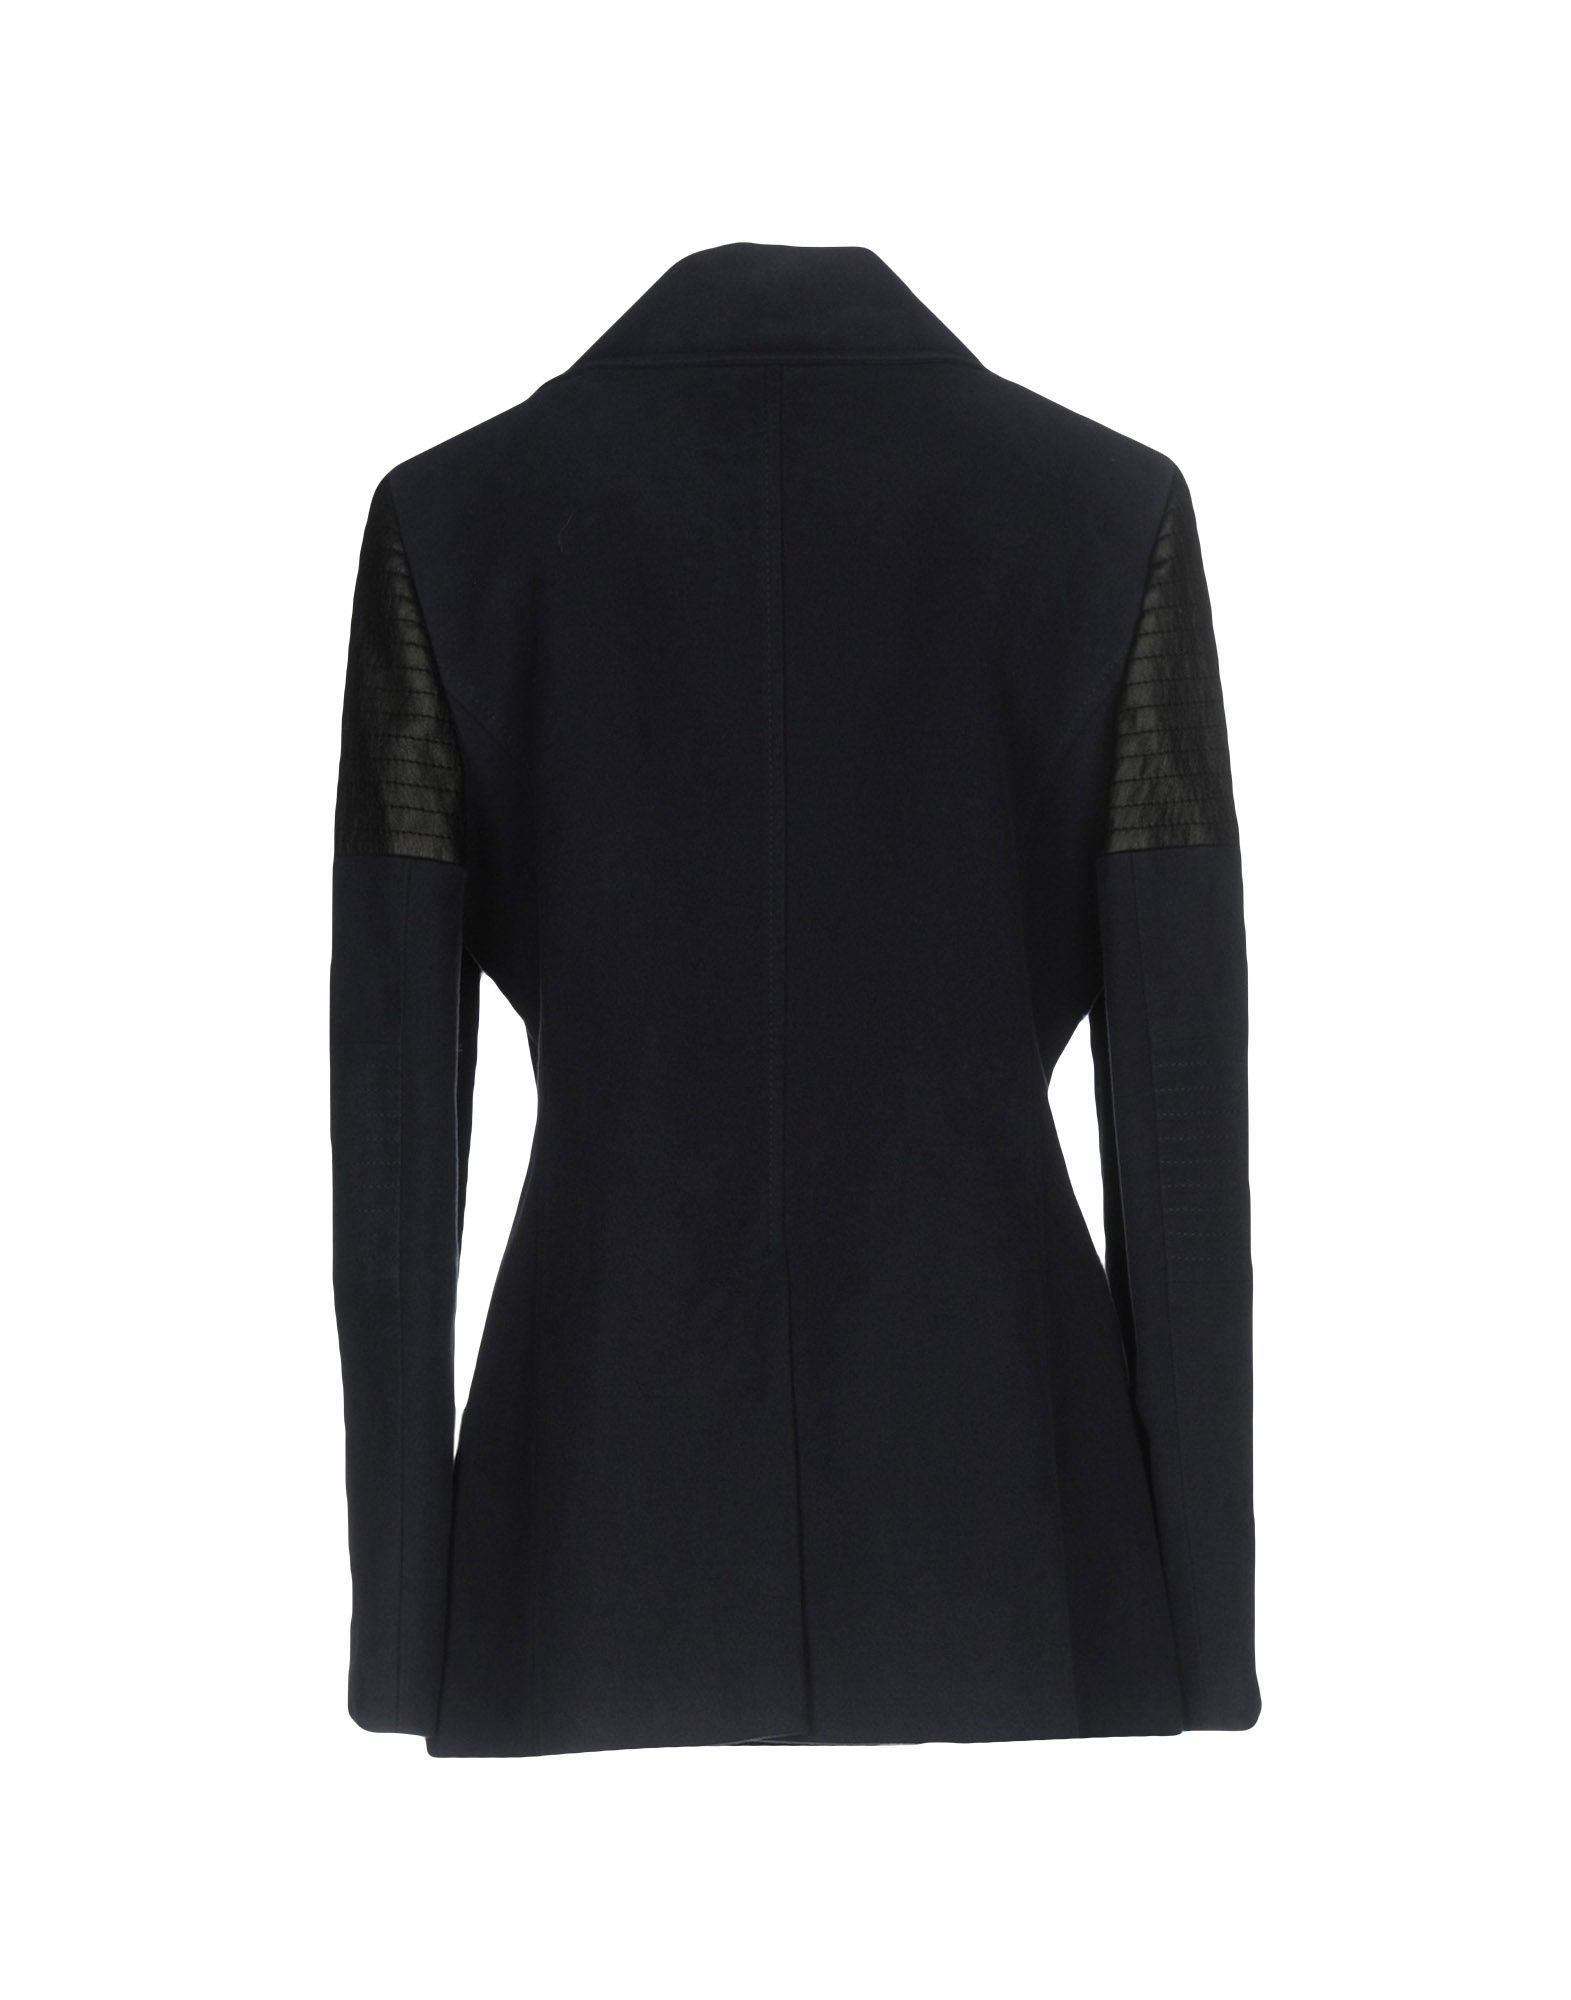 Karen Millen Dark Blue Cotton And Faux Leather Double Breasted Coat